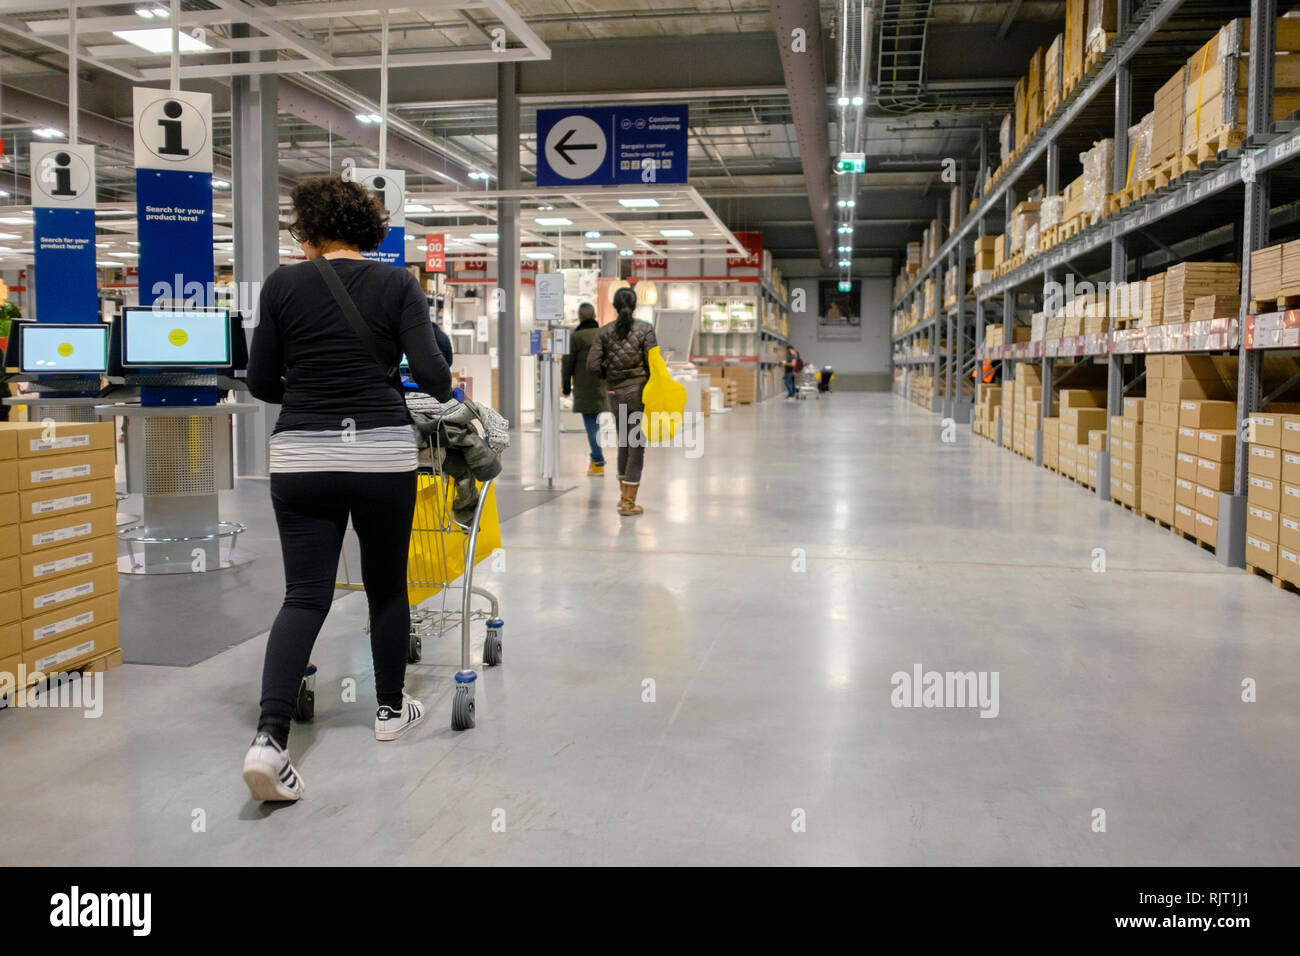 London Uk 7th February 2019 Swedish Furniture And Household Goods Company Ikea Opens Its New Store